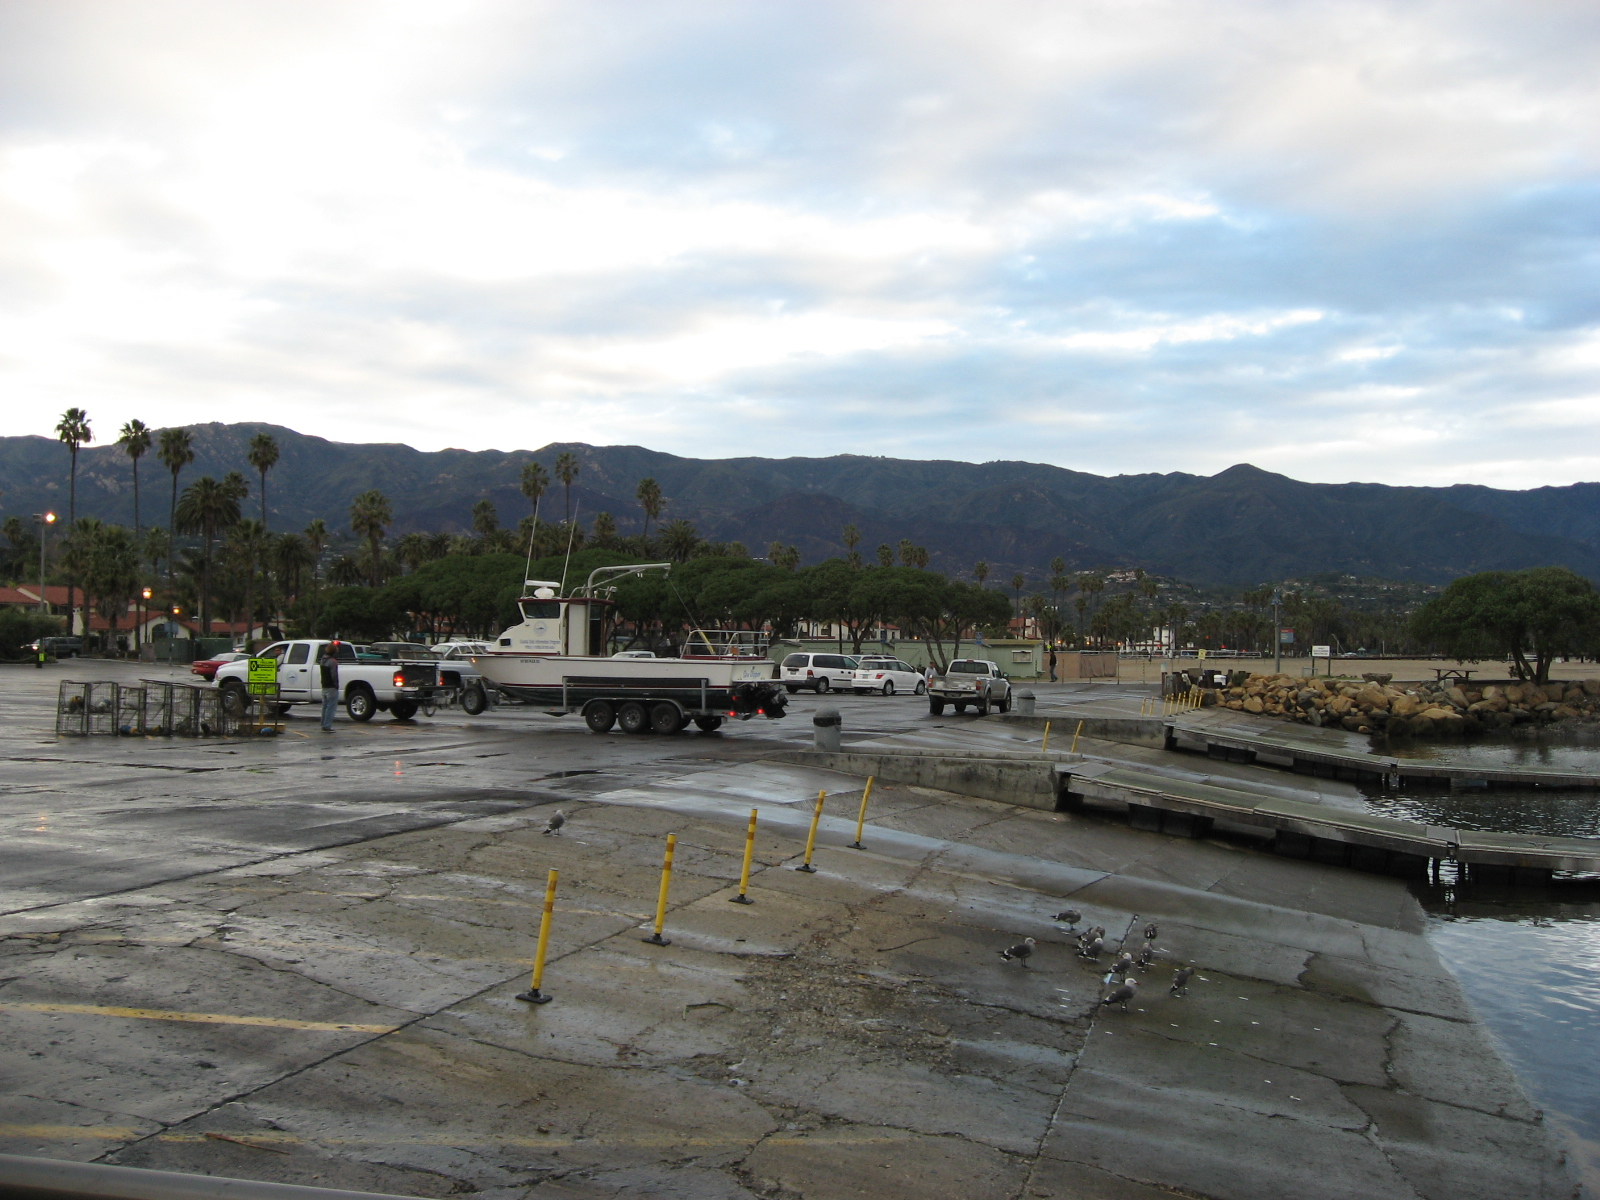 Launching at the Santa Barbara Harbor